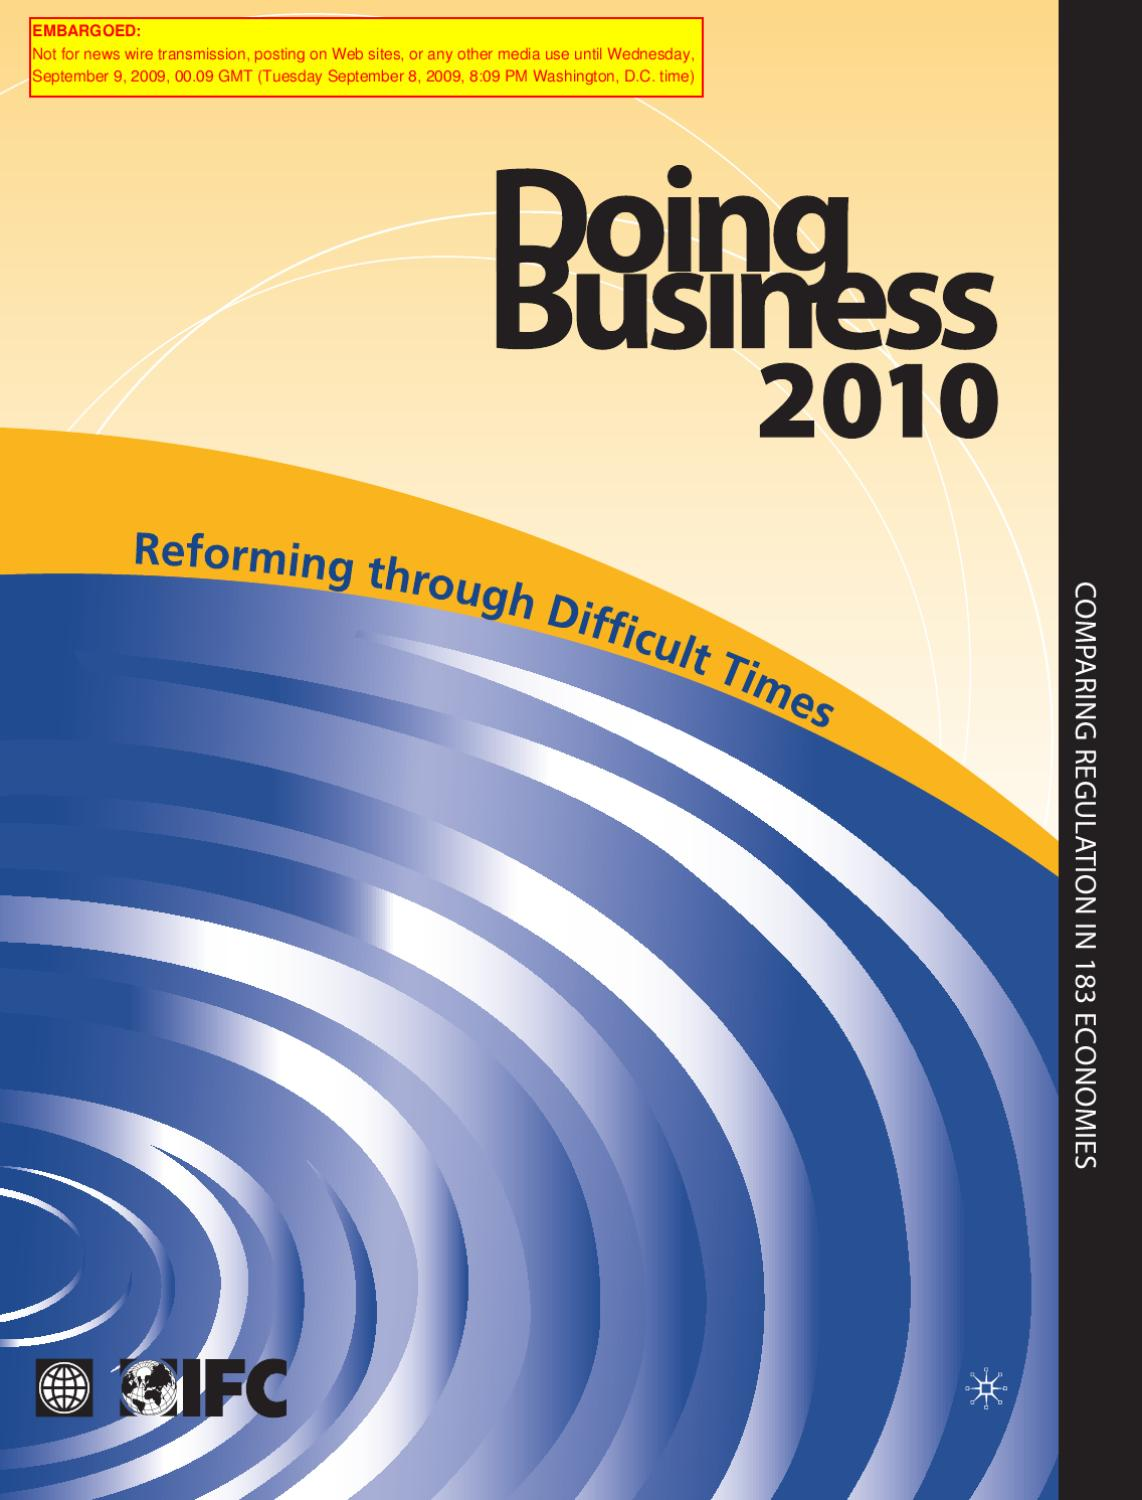 Atbi Milf Porn doing business 2010: a record in business regulation reform